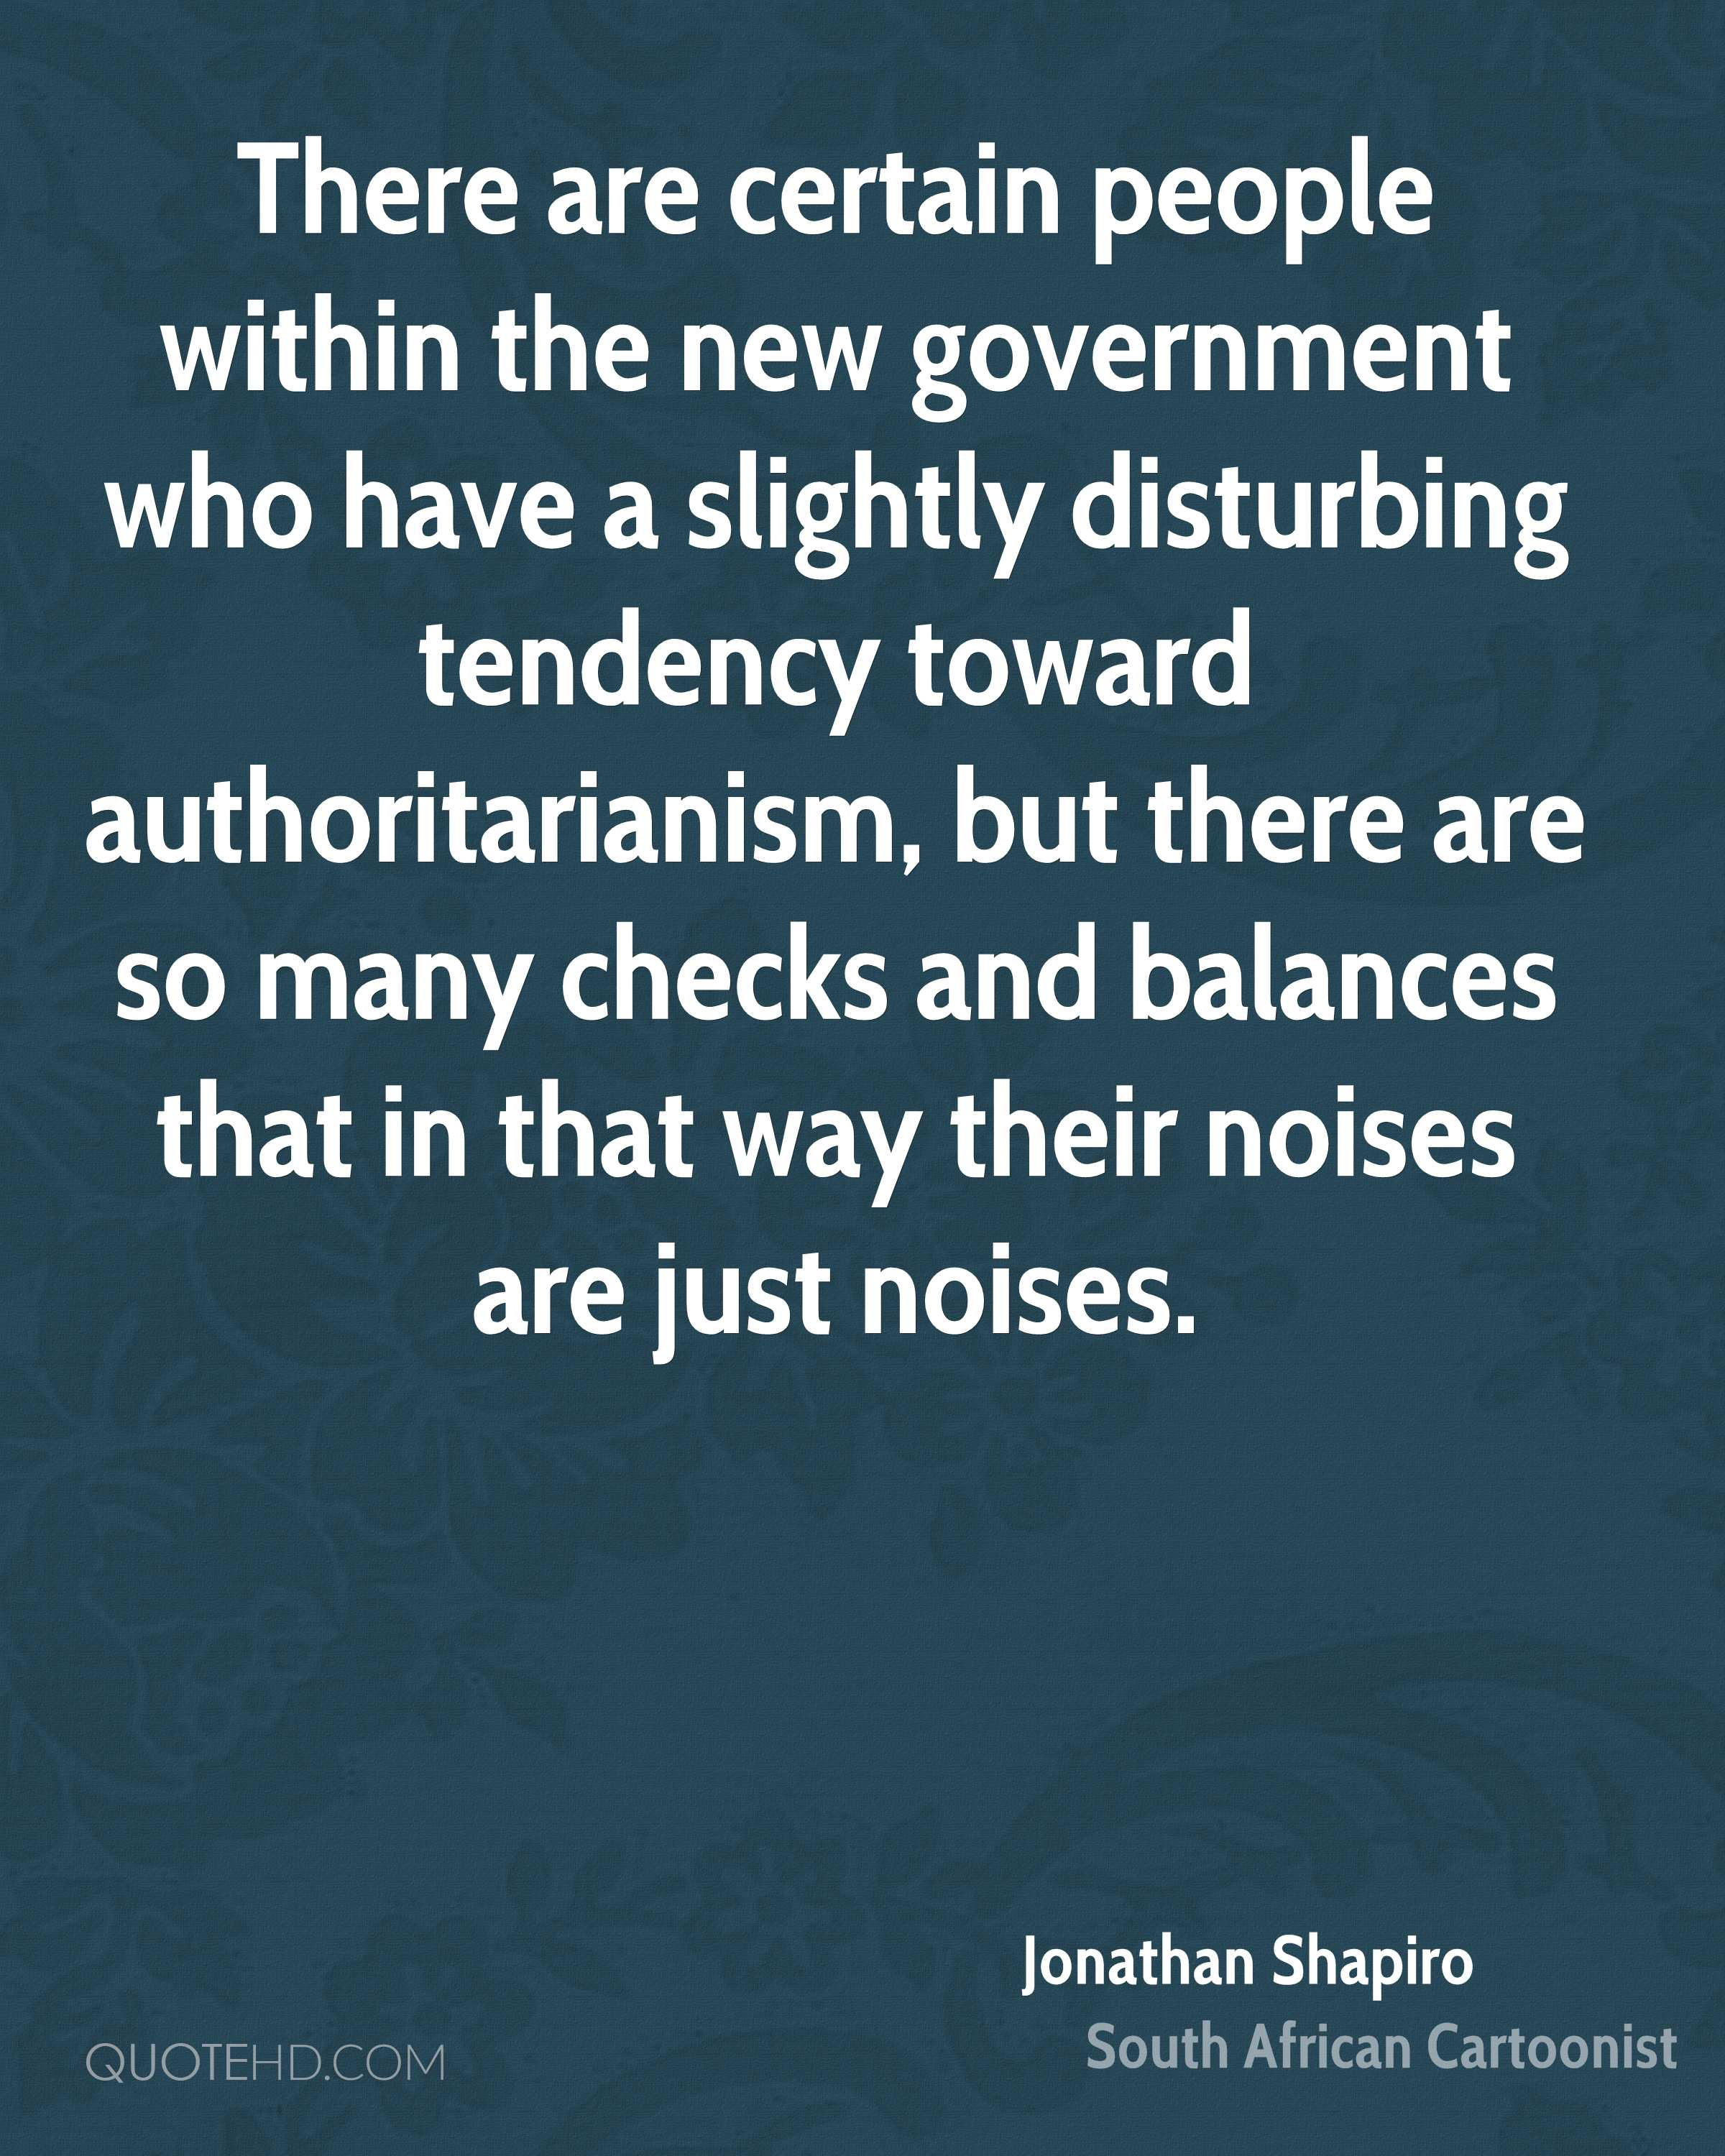 There are certain people within the new government who have a slightly disturbing tendency toward authoritarianism, but there are so many checks and balances that in that way their noises are just noises.